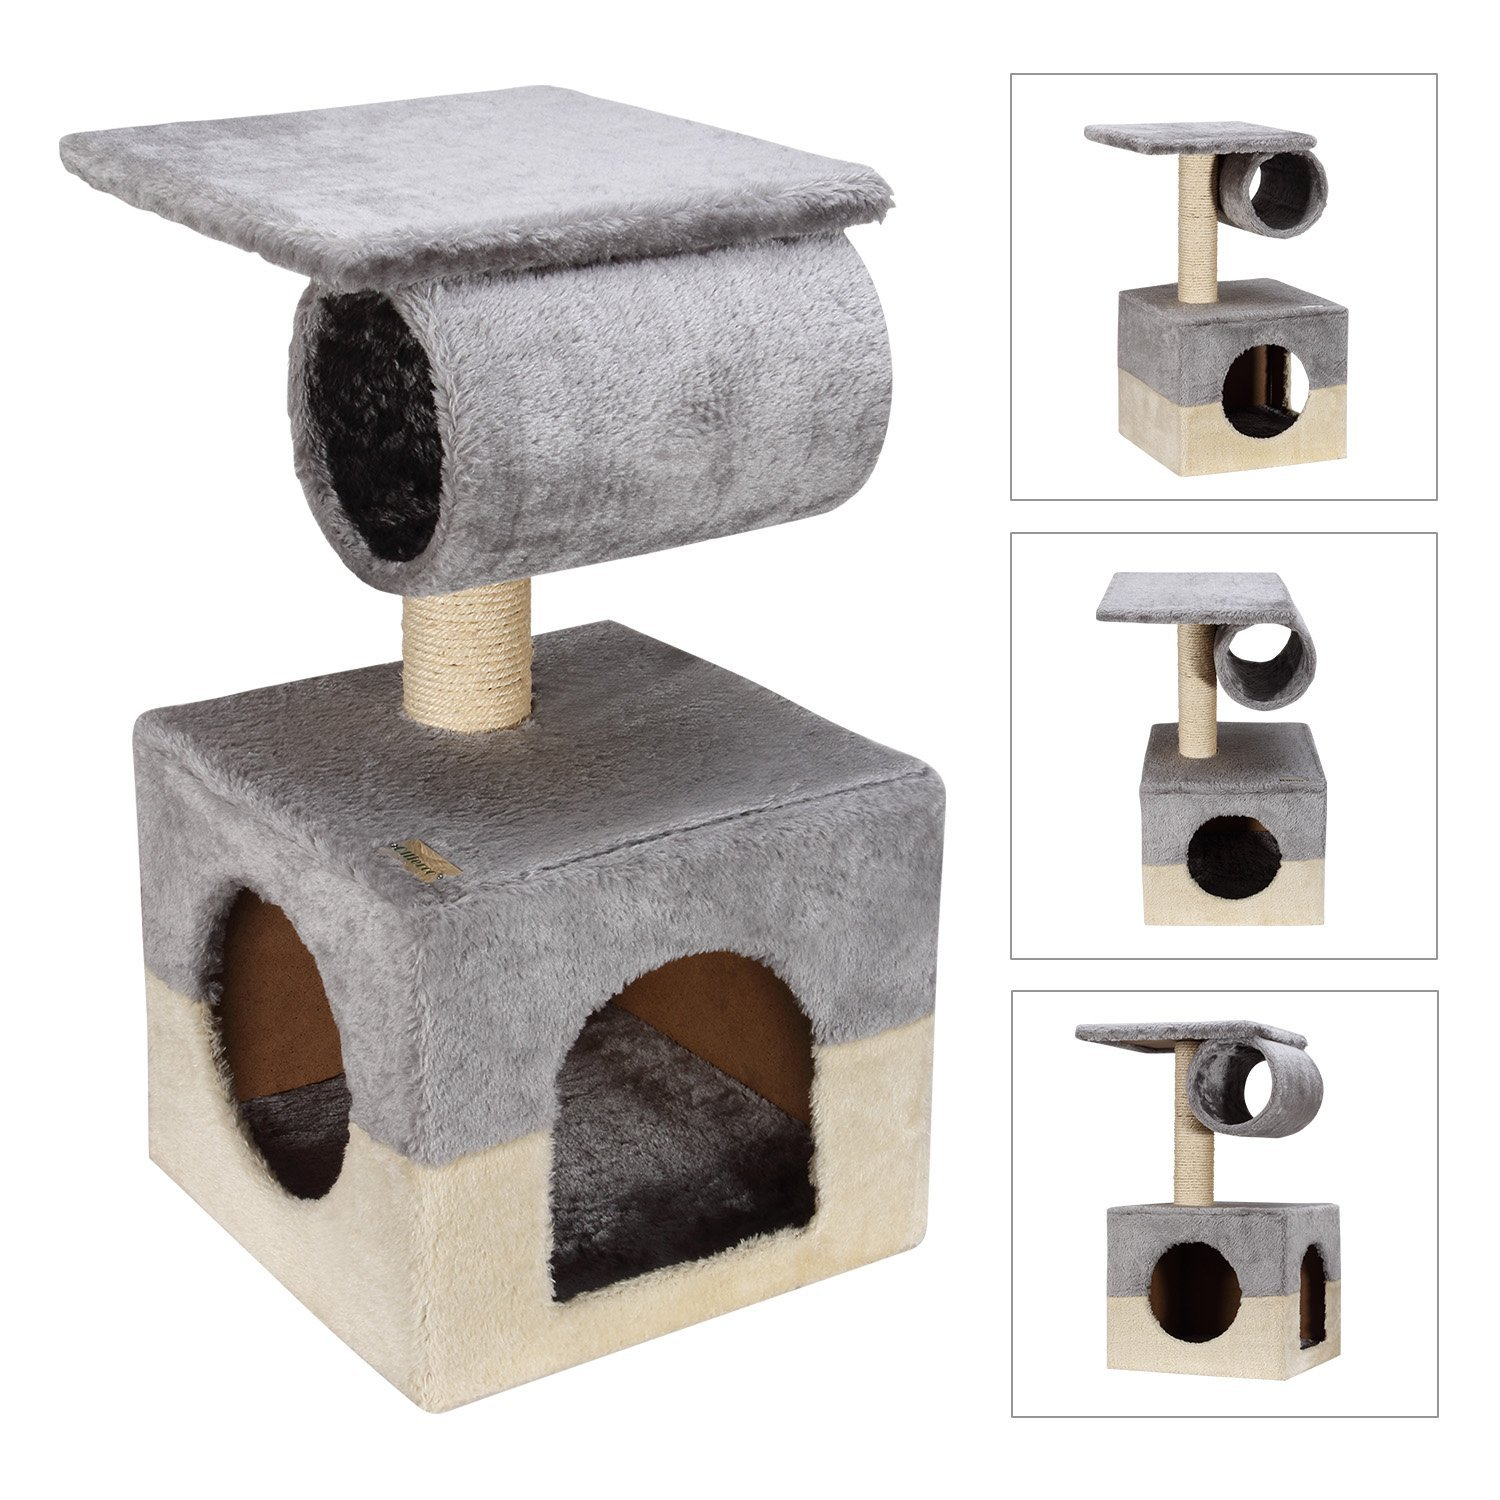 "Ollieroo® 22"" Cat Tree Condo Furniture Scratching Post Small Kitten House Tree Condo Cube Small Great for Kittens"